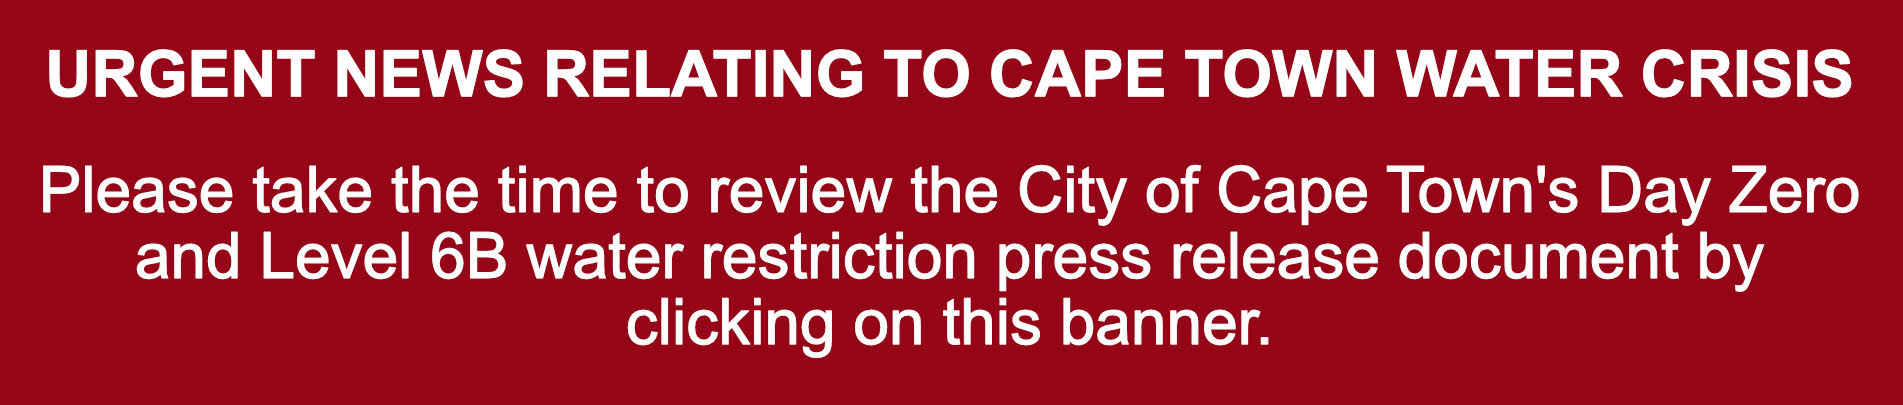 Cape Town water restrictions